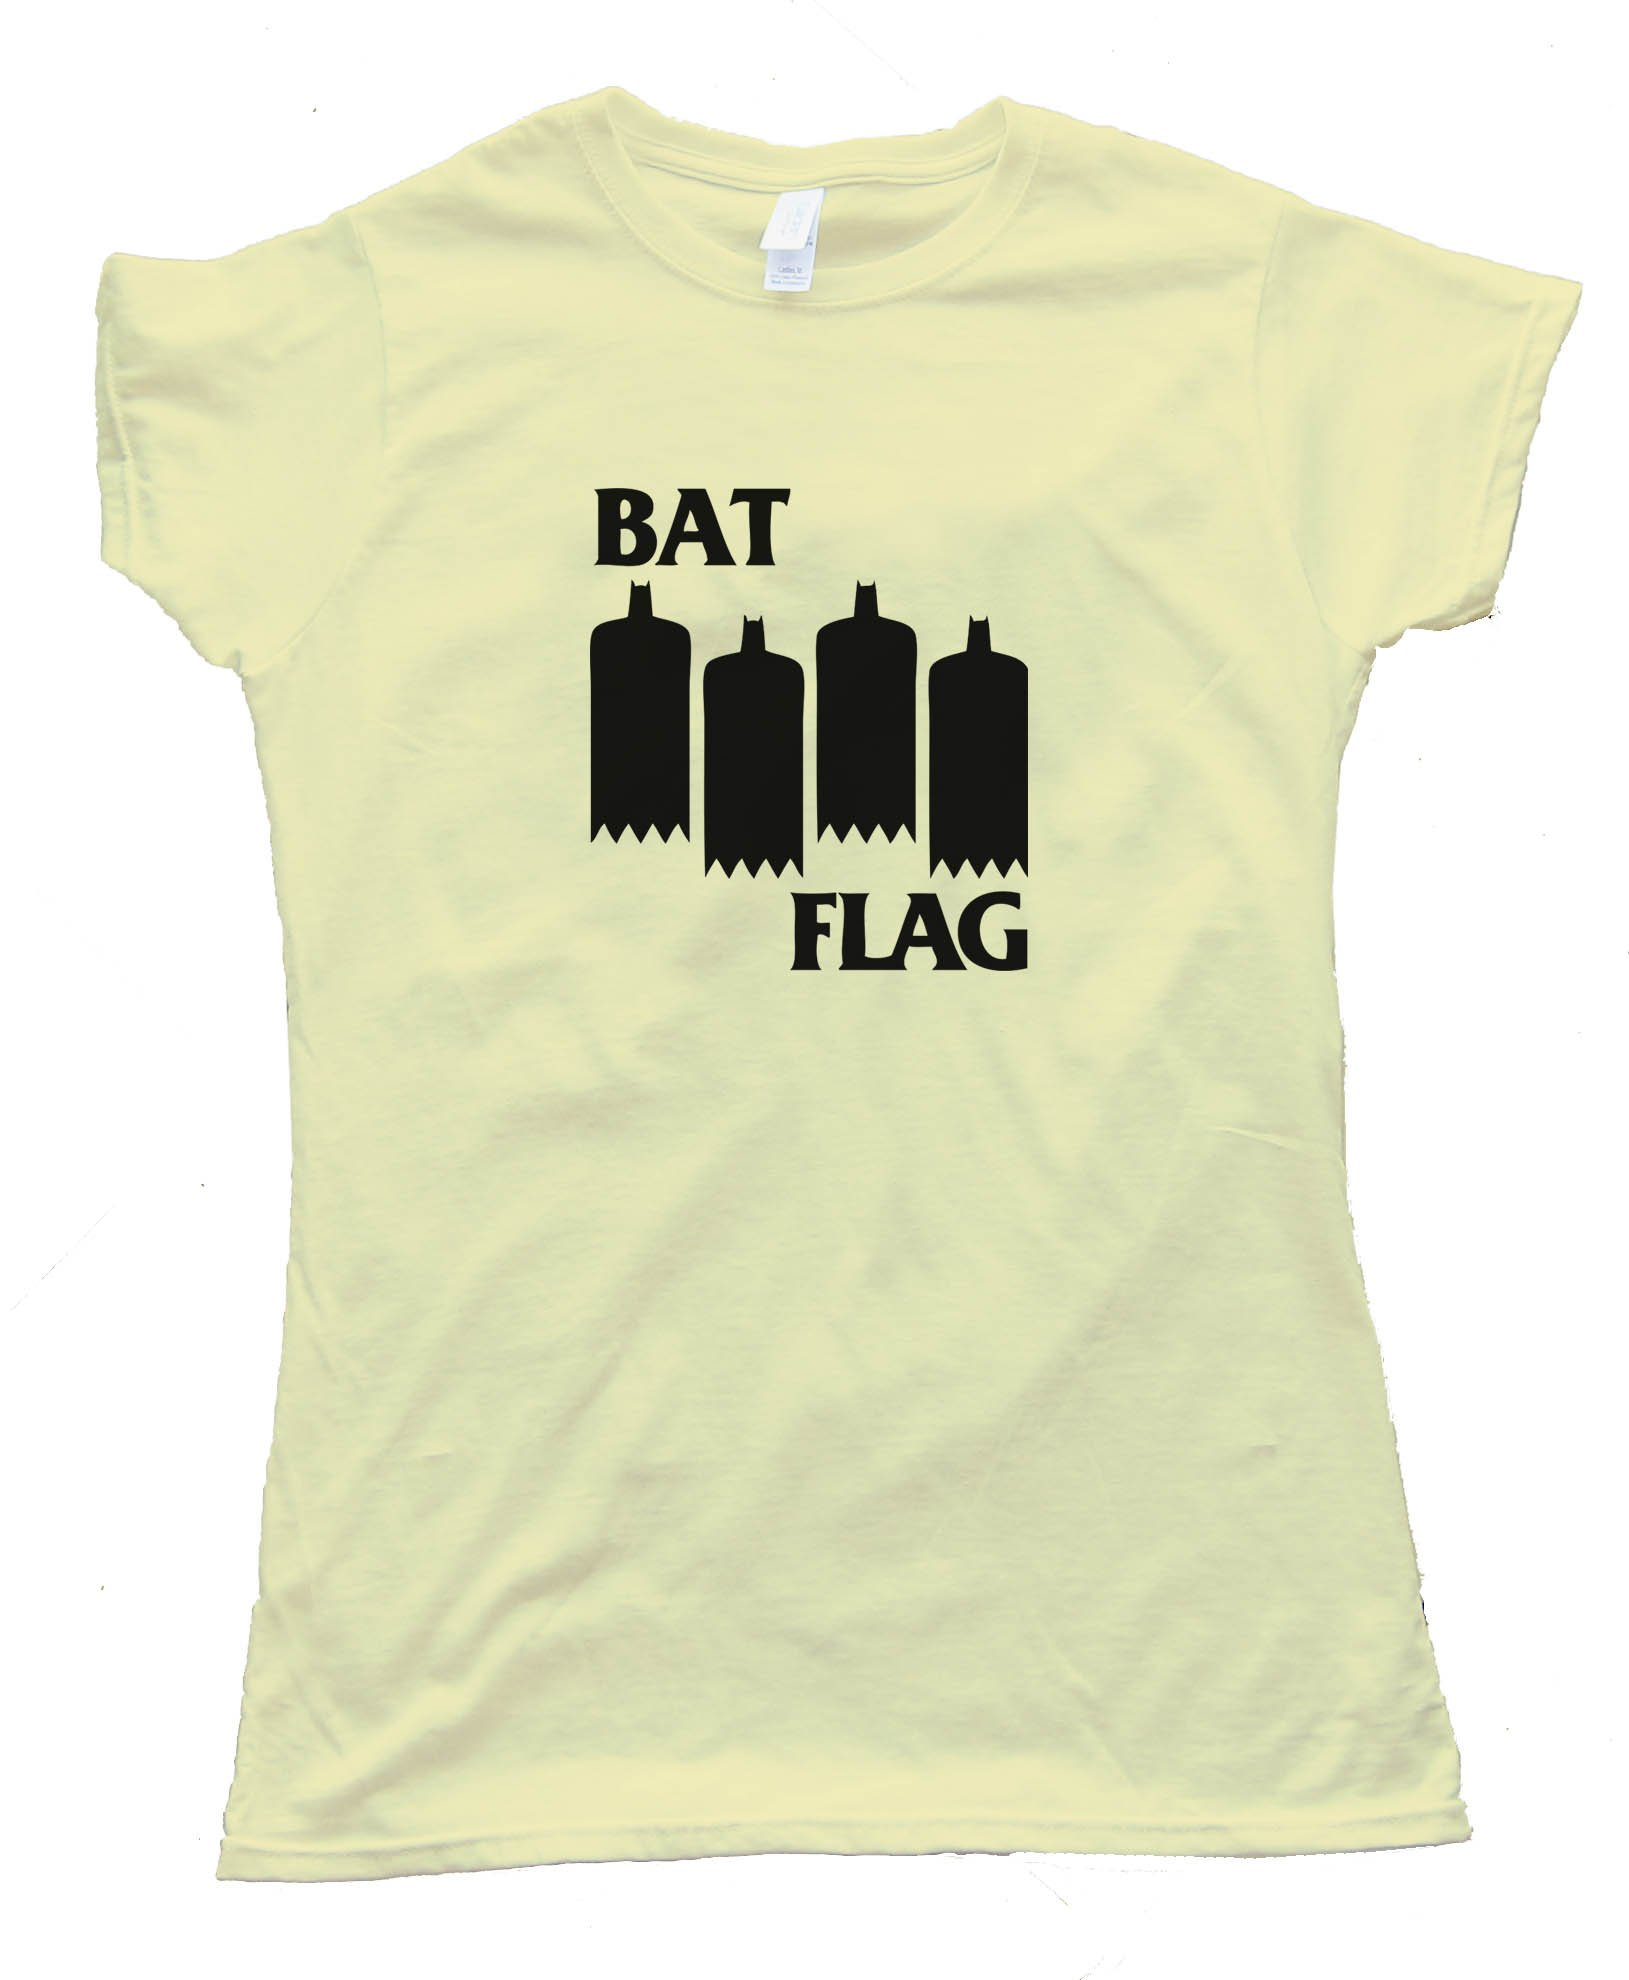 Womens Bat Flag - Black Flag Meme - Tee Shirt